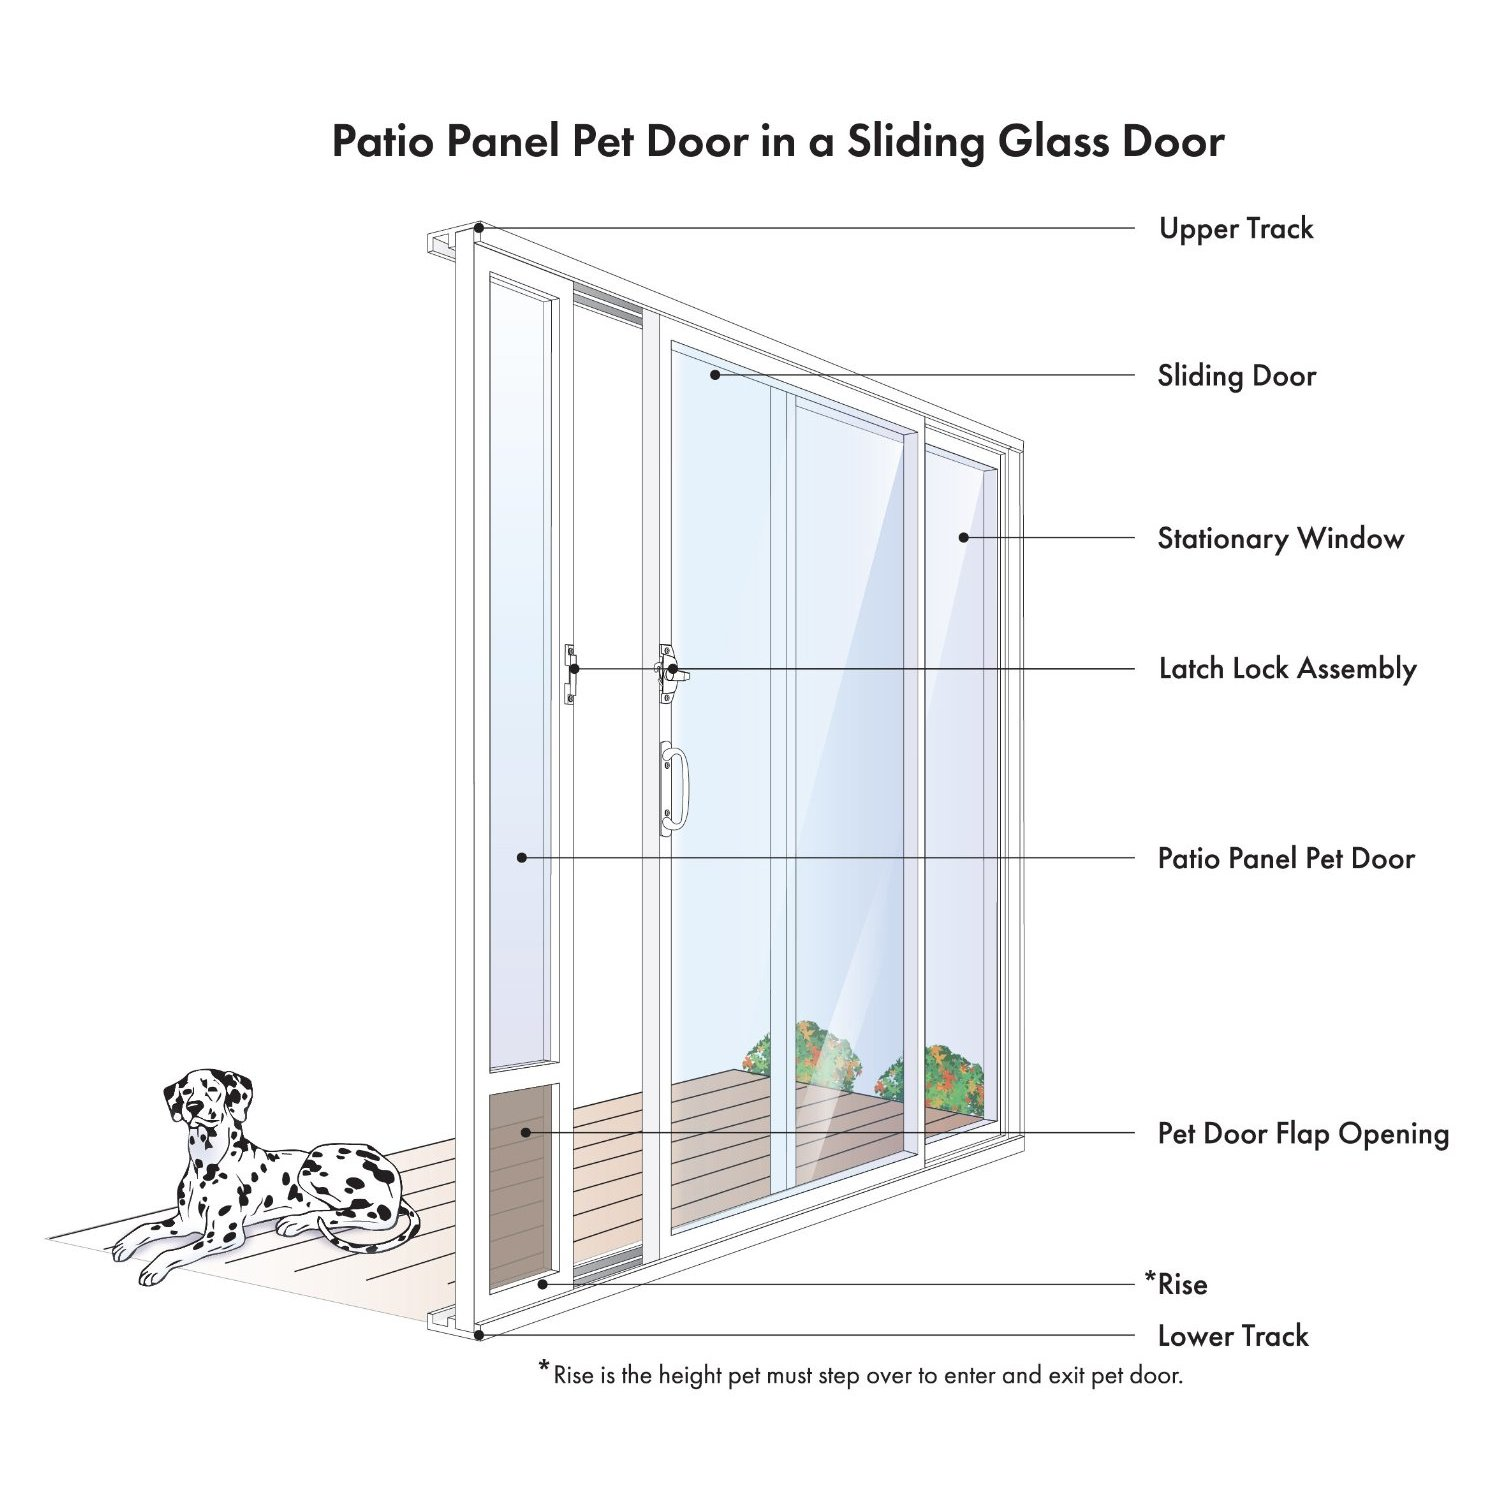 Quick View - PetSafe Freedom Patio Panel Pet Door For 81